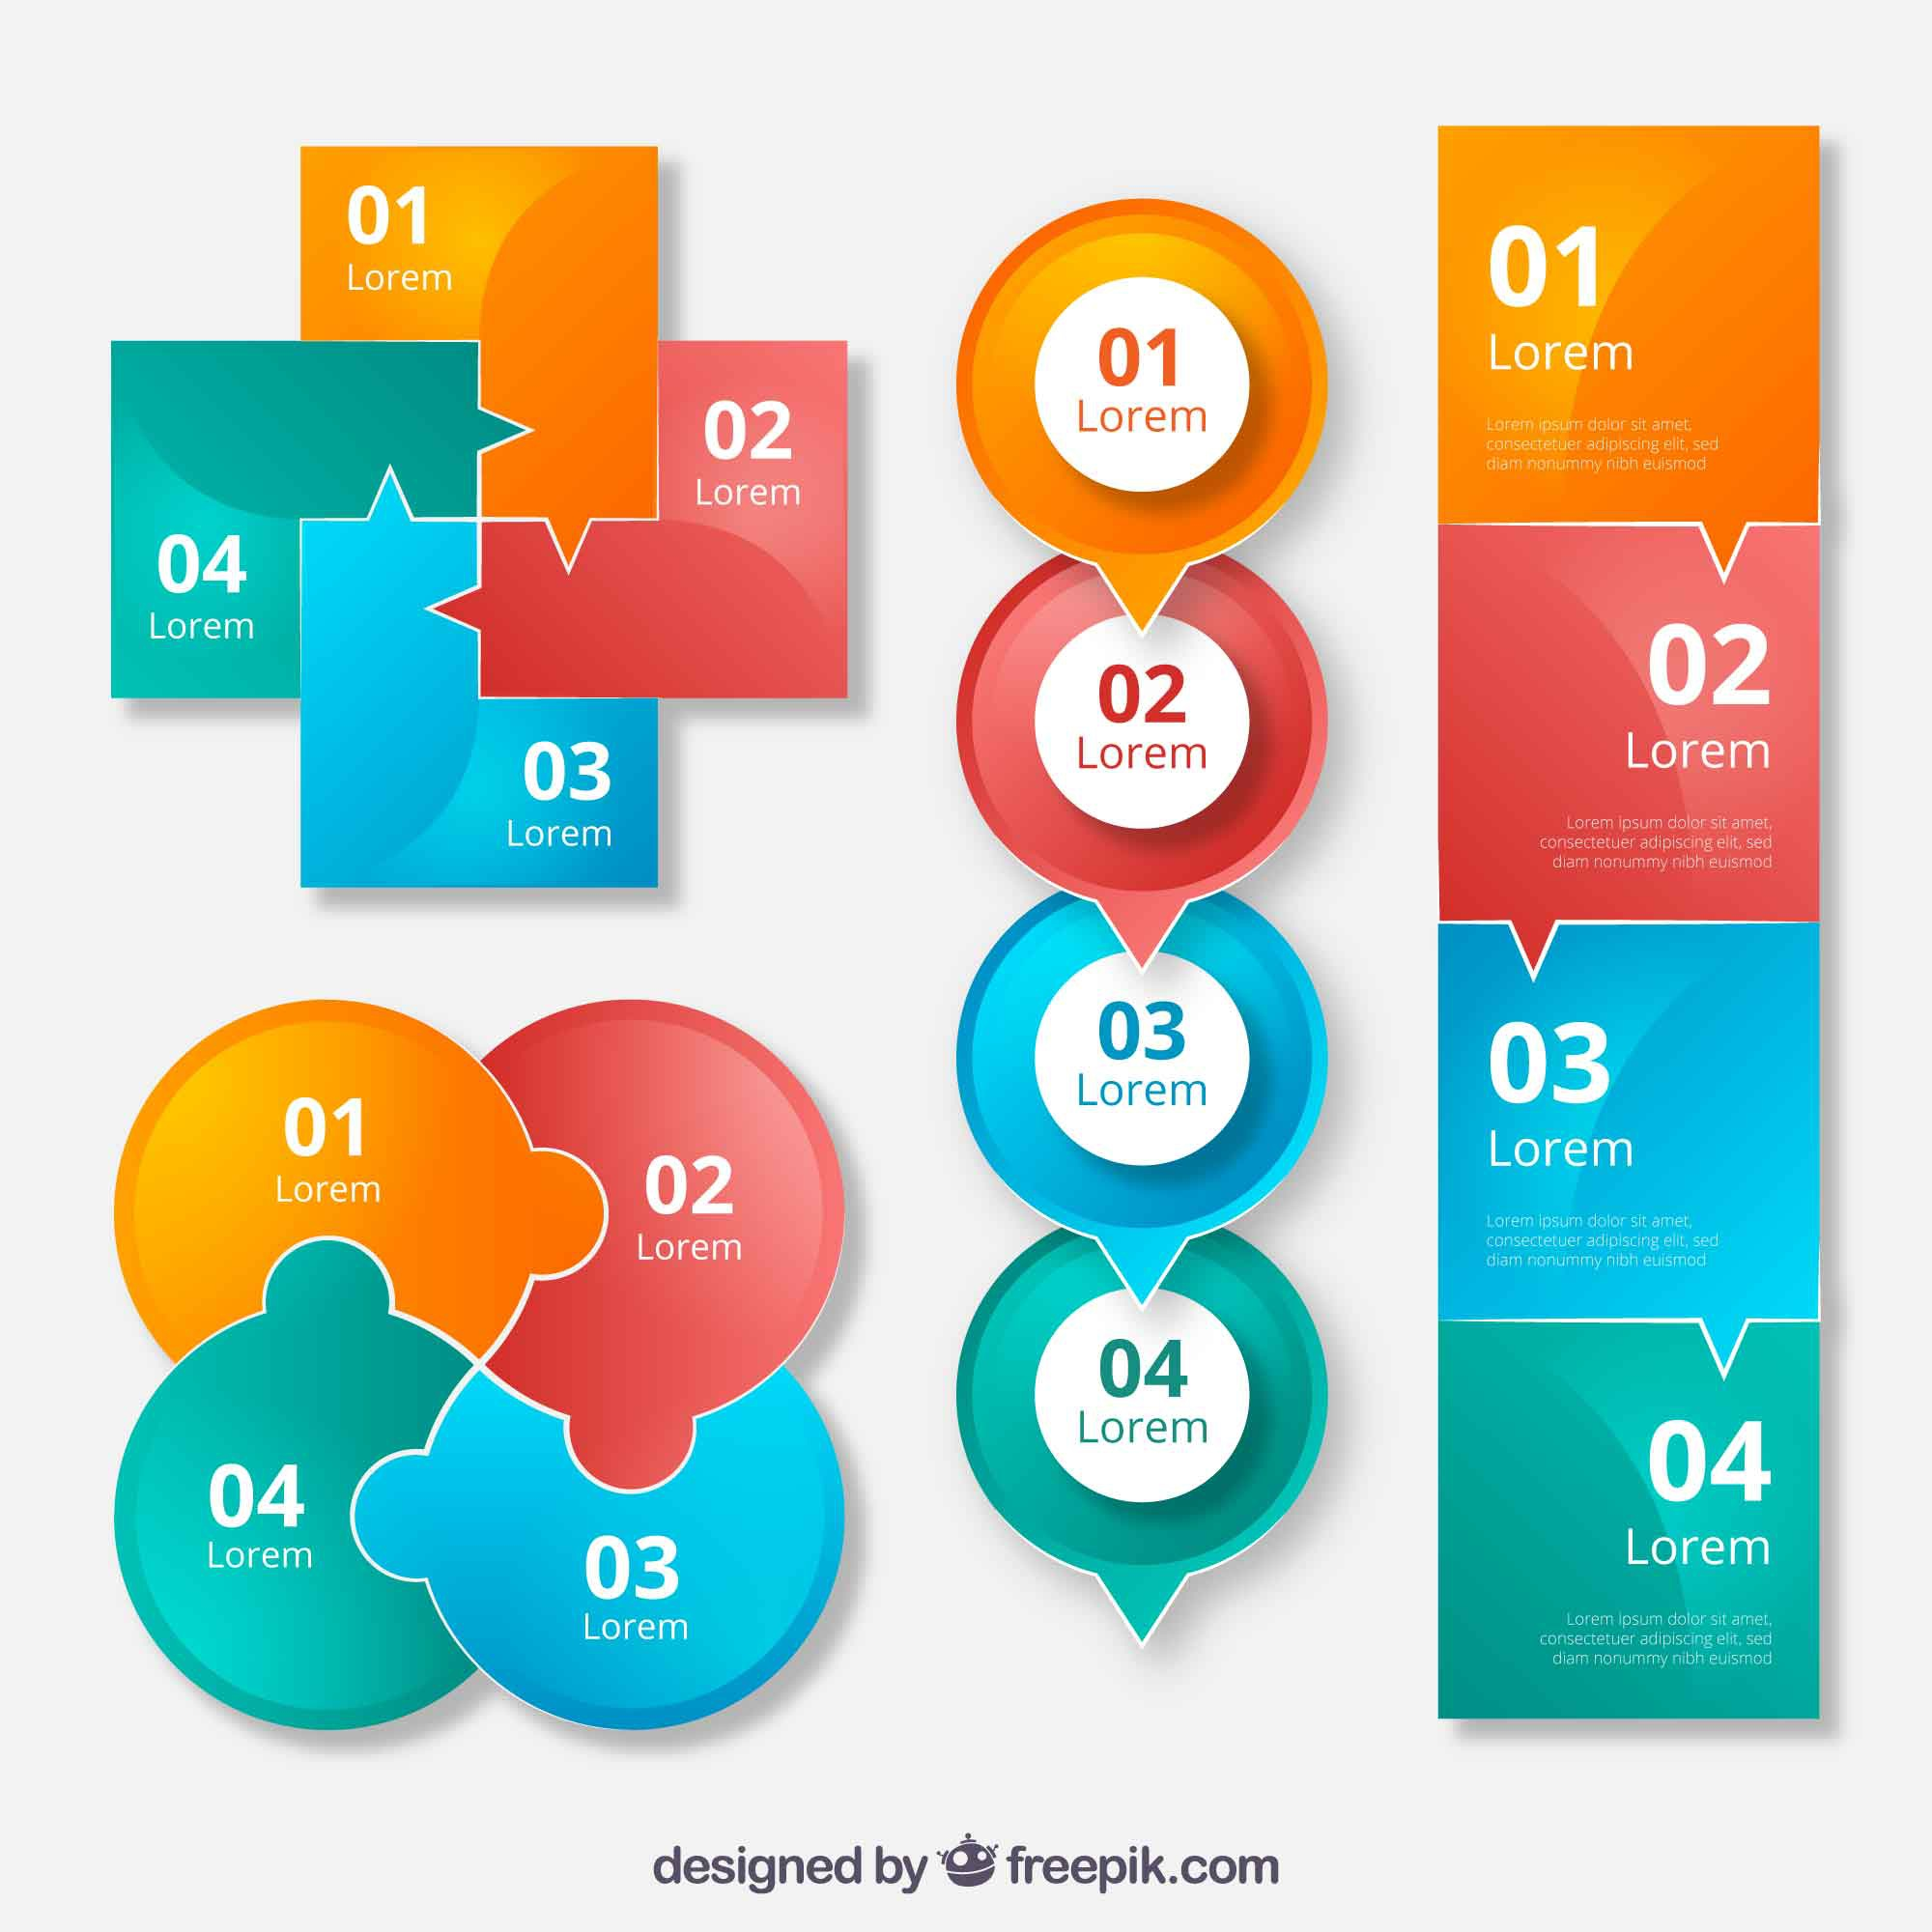 Creative collection of infographic elements